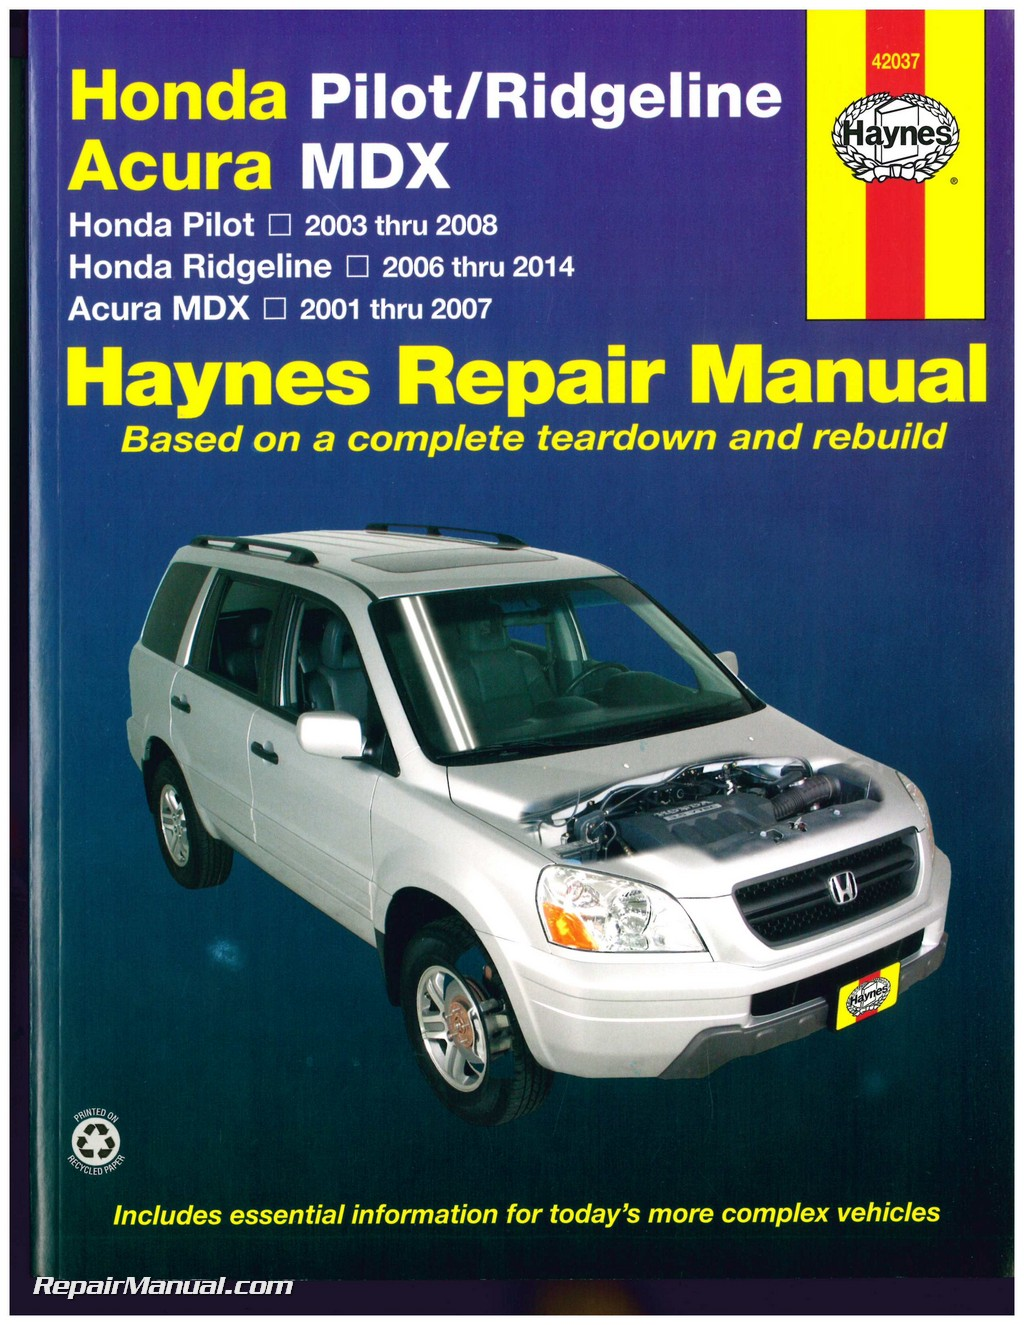 honda pilot 2003 2008 honda ridgeline 2006 2014 acura mdx 2001 2007 rh repairmanual com 2007 honda ridgeline repair manual torrent 2007 honda ridgeline repair manual pdf